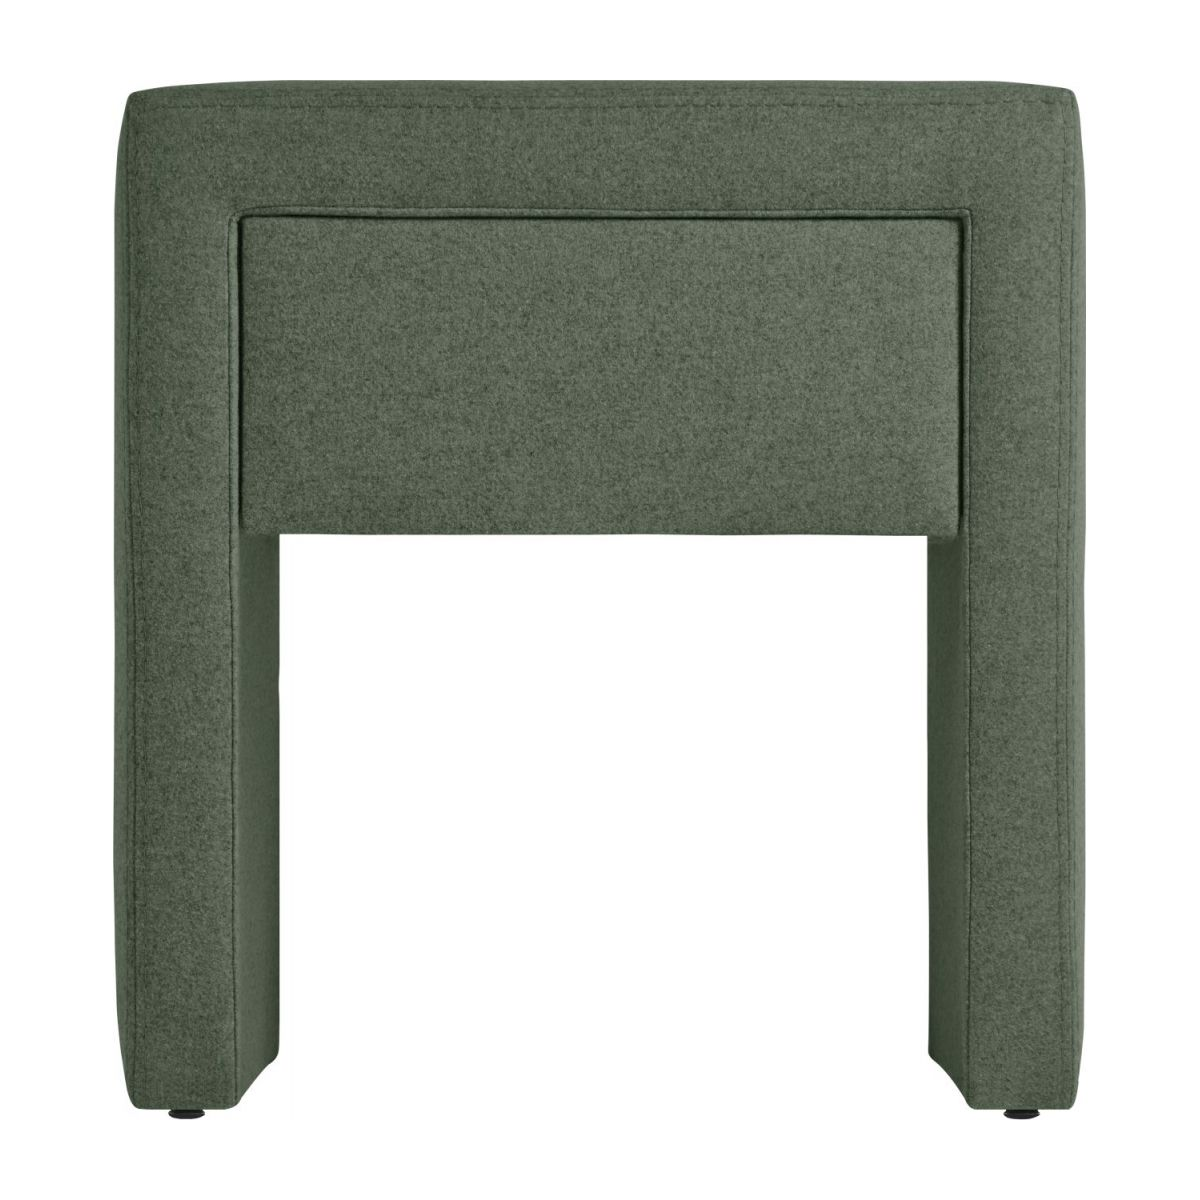 Fabric bedside table n°4